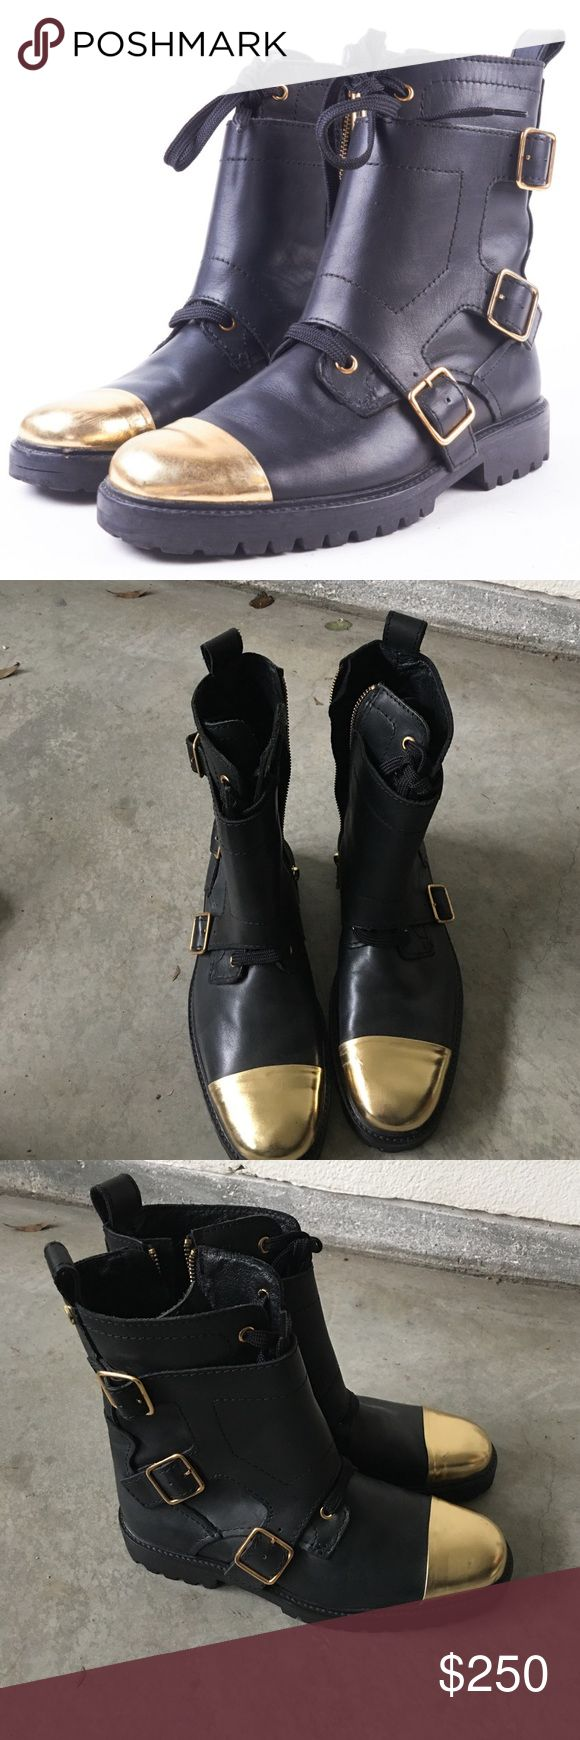 Zadig And Voltaire gold cap toe dore combat boots Zadig and Voltaire gold cap toe doré combat boots. Excellent condition, like new. Zadig & Voltaire Shoes Combat & Moto Boots